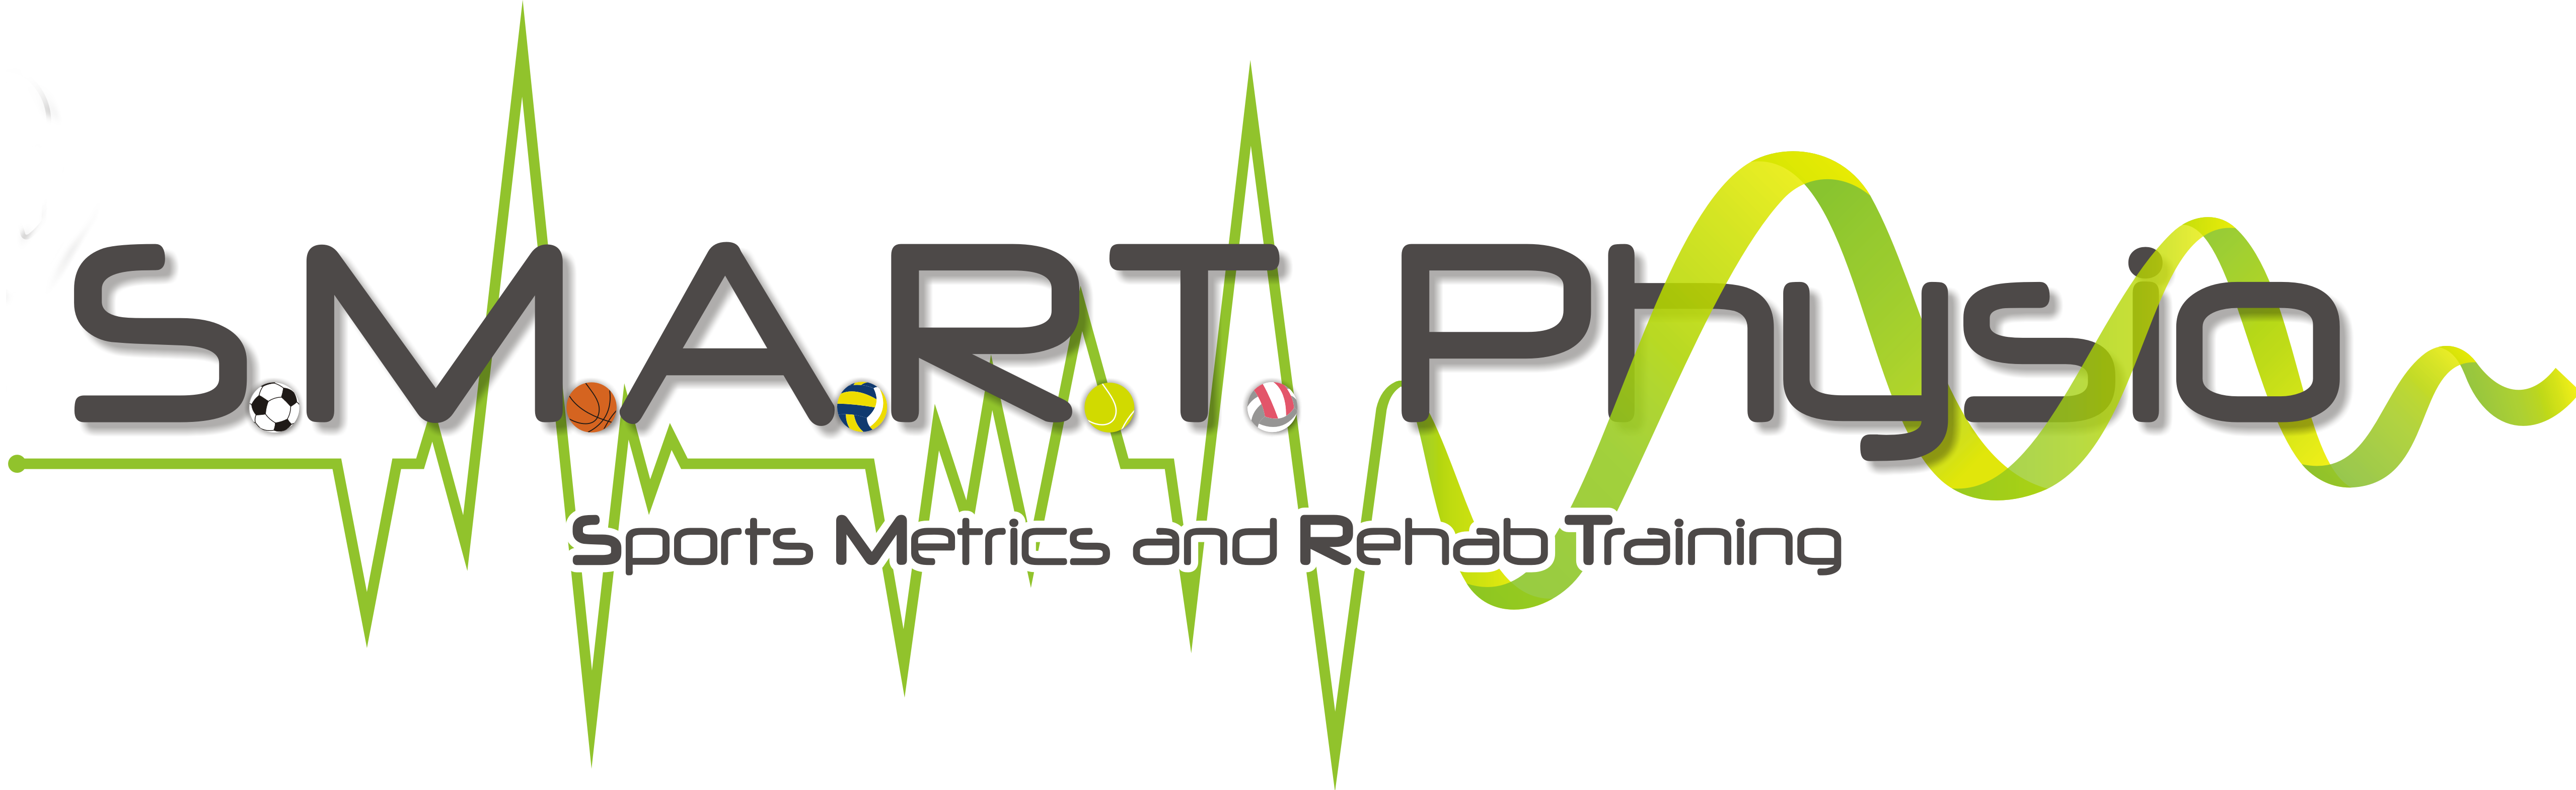 S.M.A.R.T. Physio